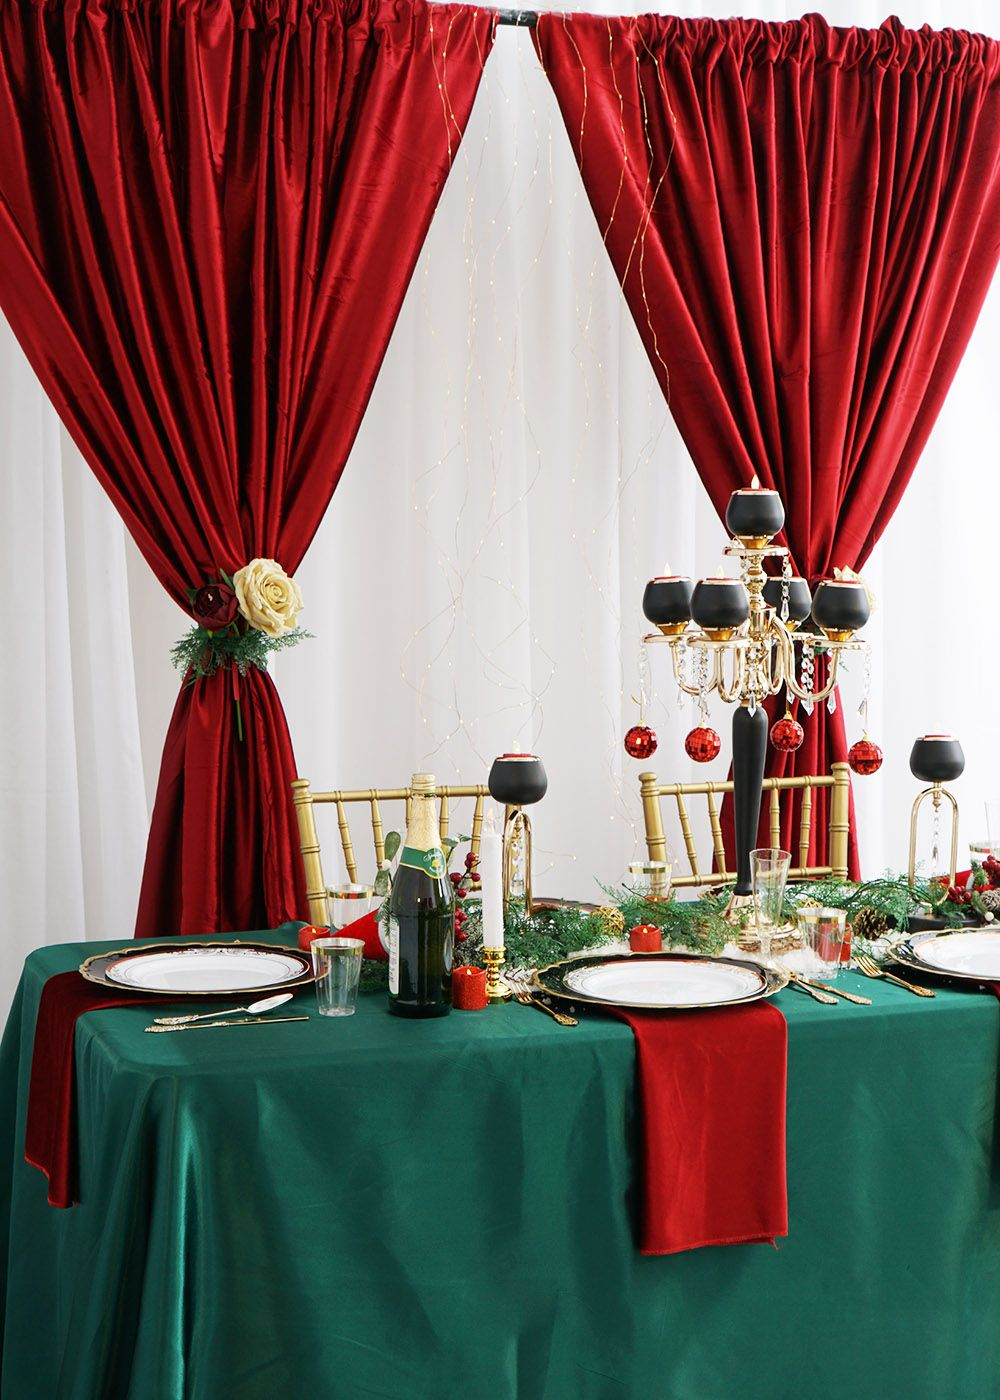 Red Lace Round Rectangle Christmas Table Cloth Table Cover Wedding Room Decor US